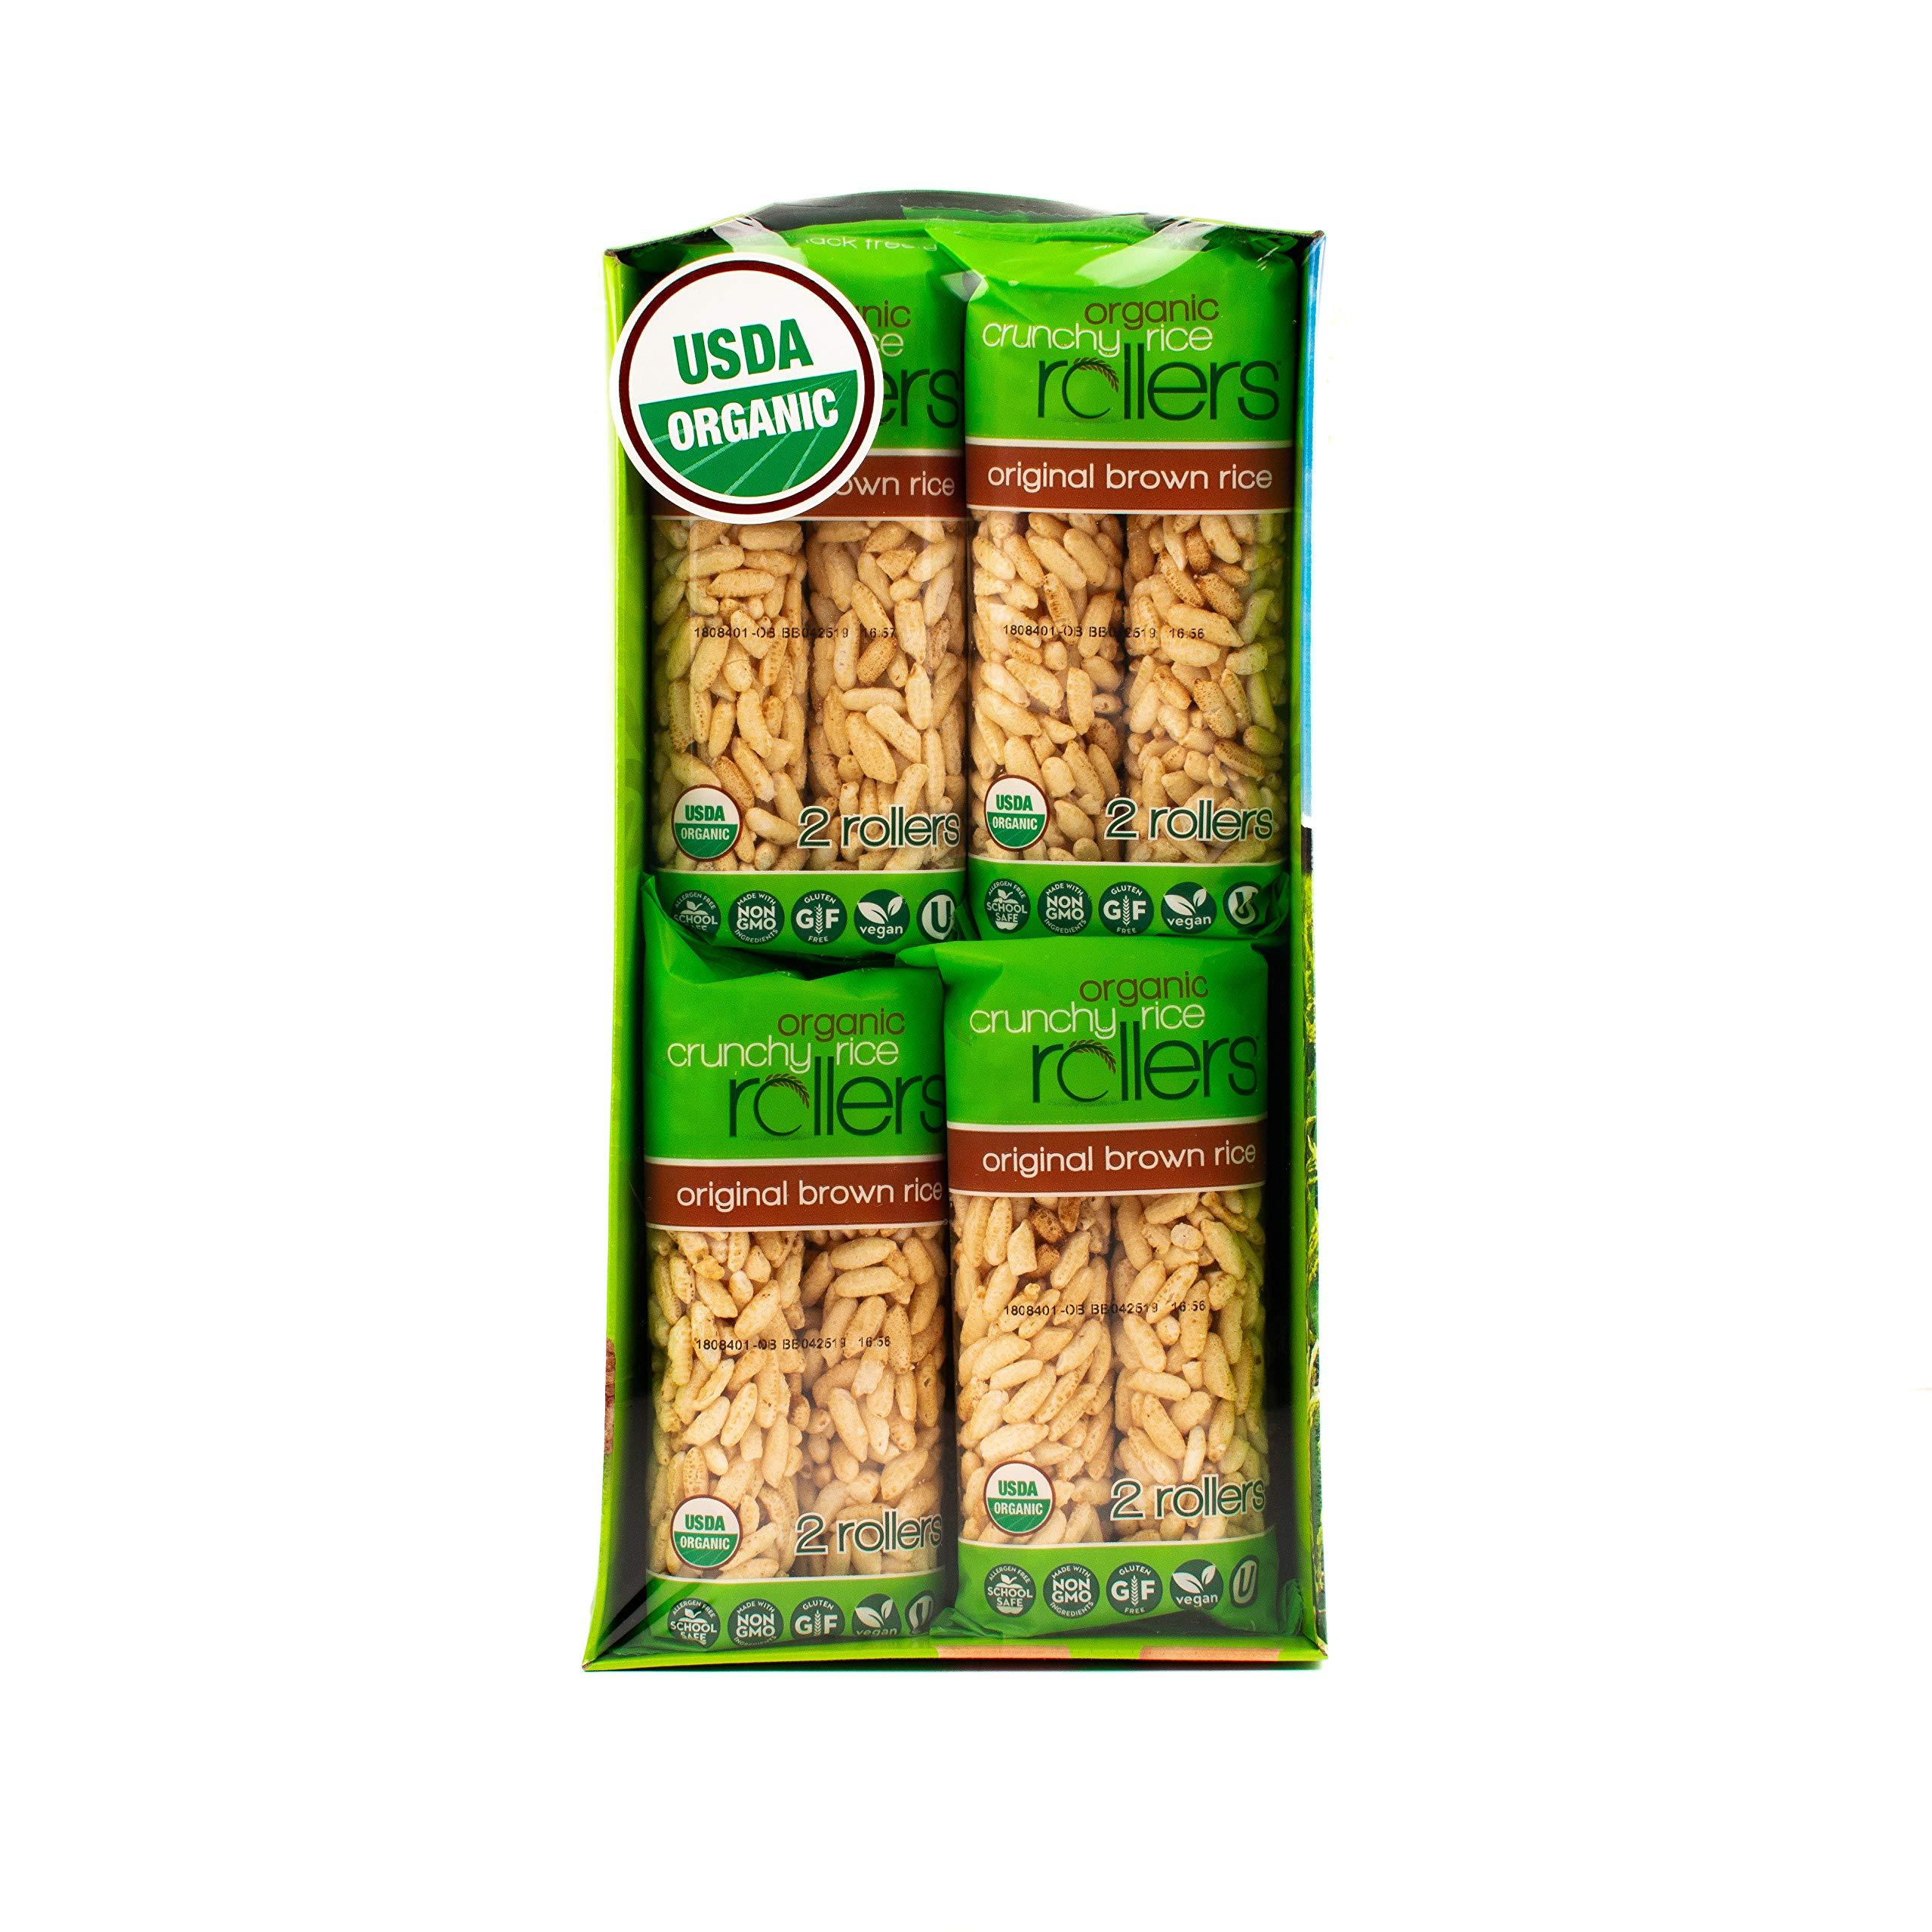 Bamboo Lane Organic Rice 32 Rollers, 14 oz by Brookside